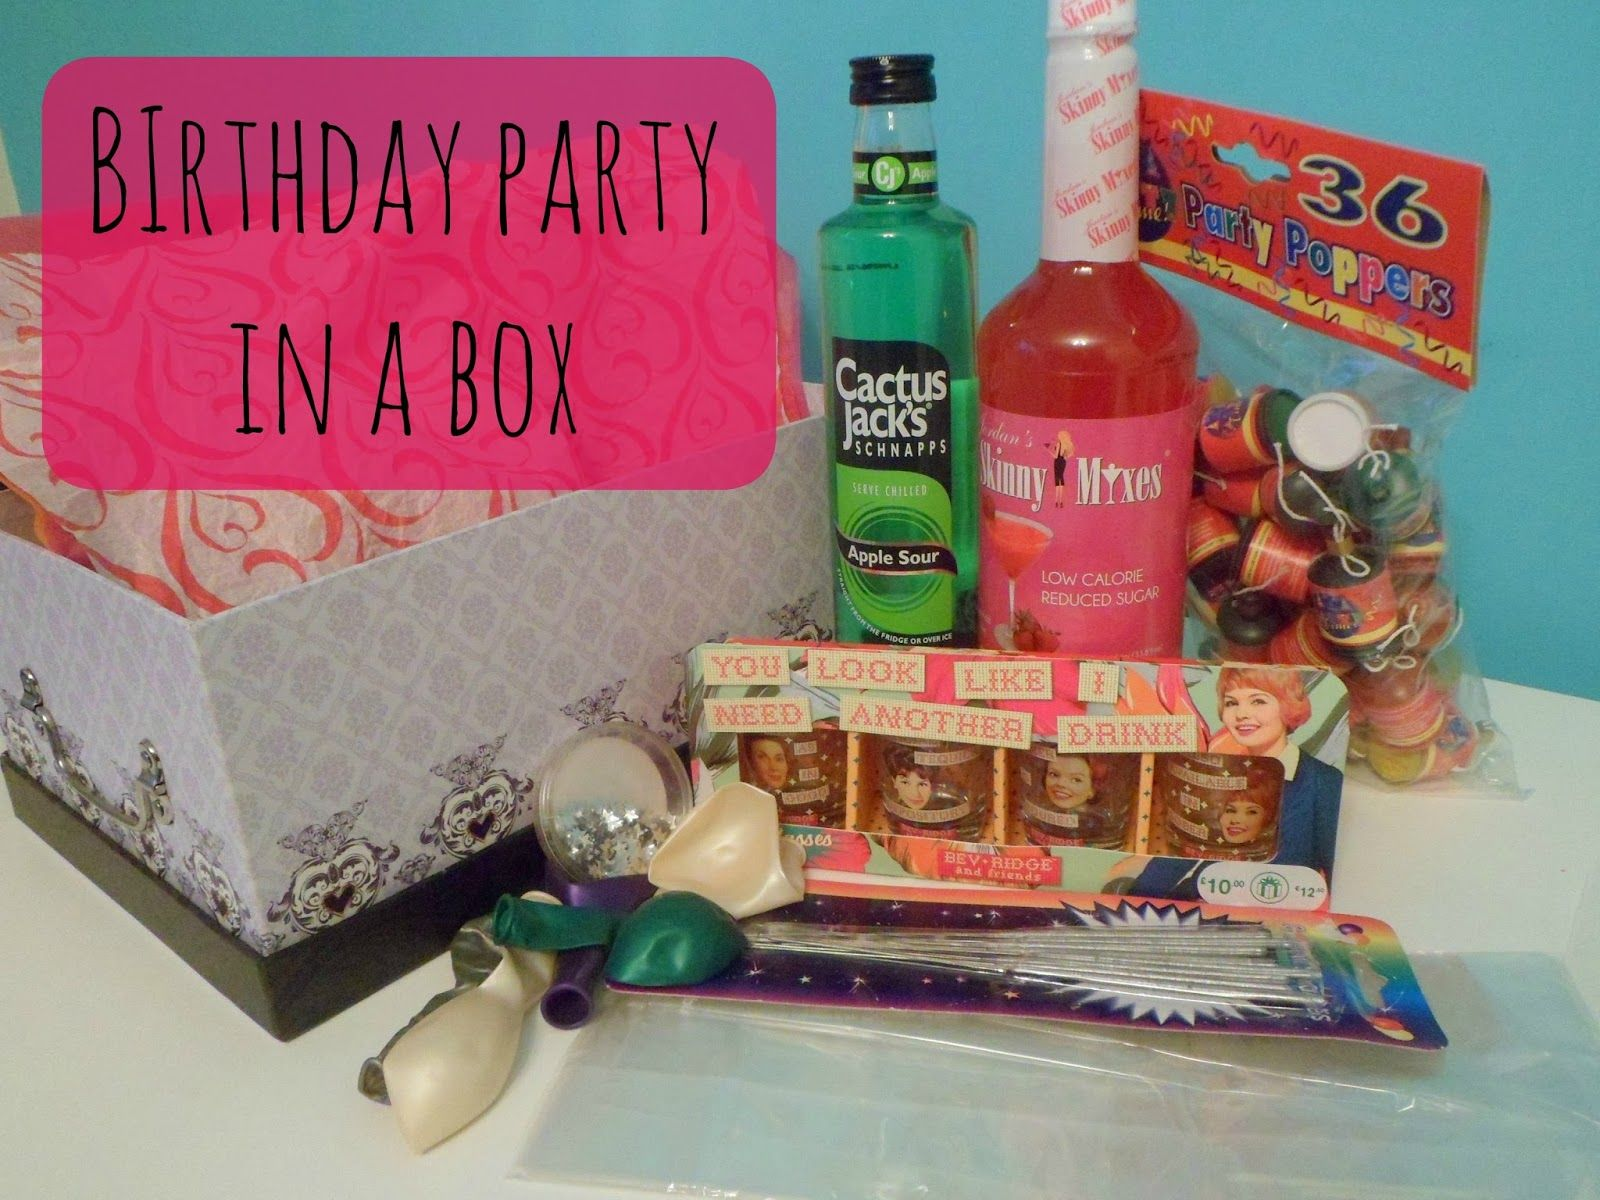 Beauty by a geek diy birthday party in a box gift idea gift ideas beauty by a geek diy birthday party in a box gift idea solutioingenieria Image collections